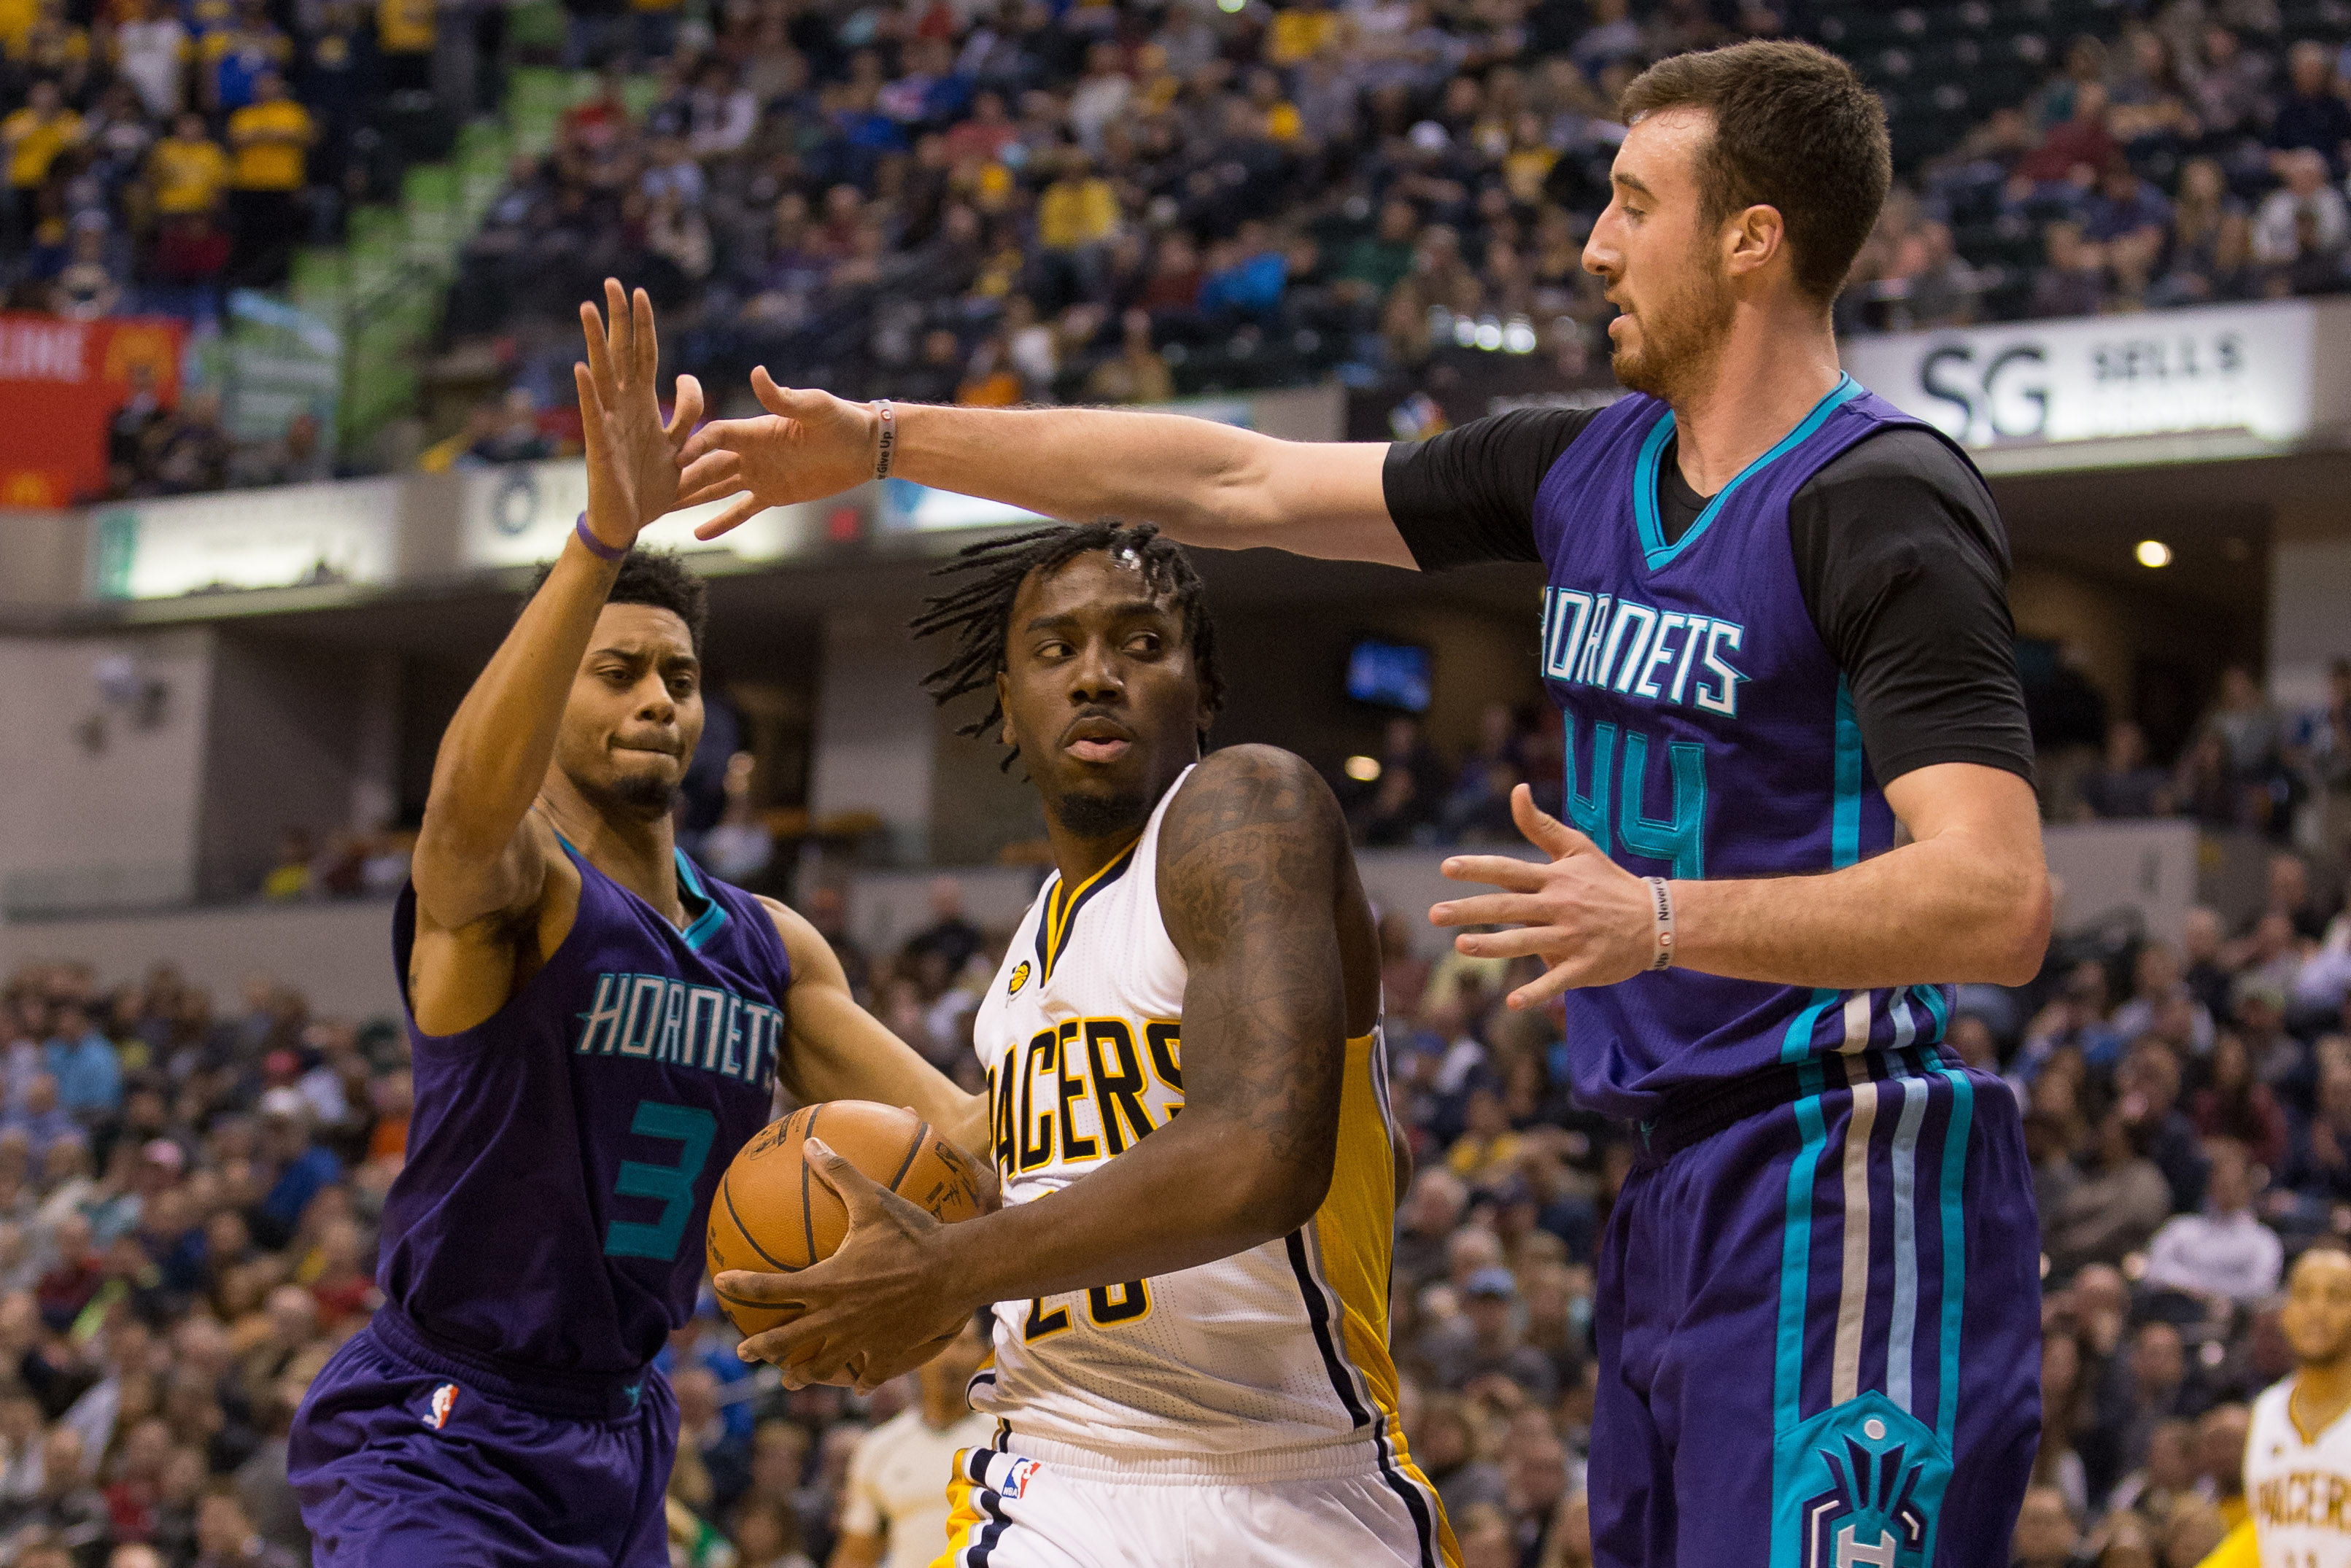 9945760-nba-charlotte-hornets-at-indiana-pacers